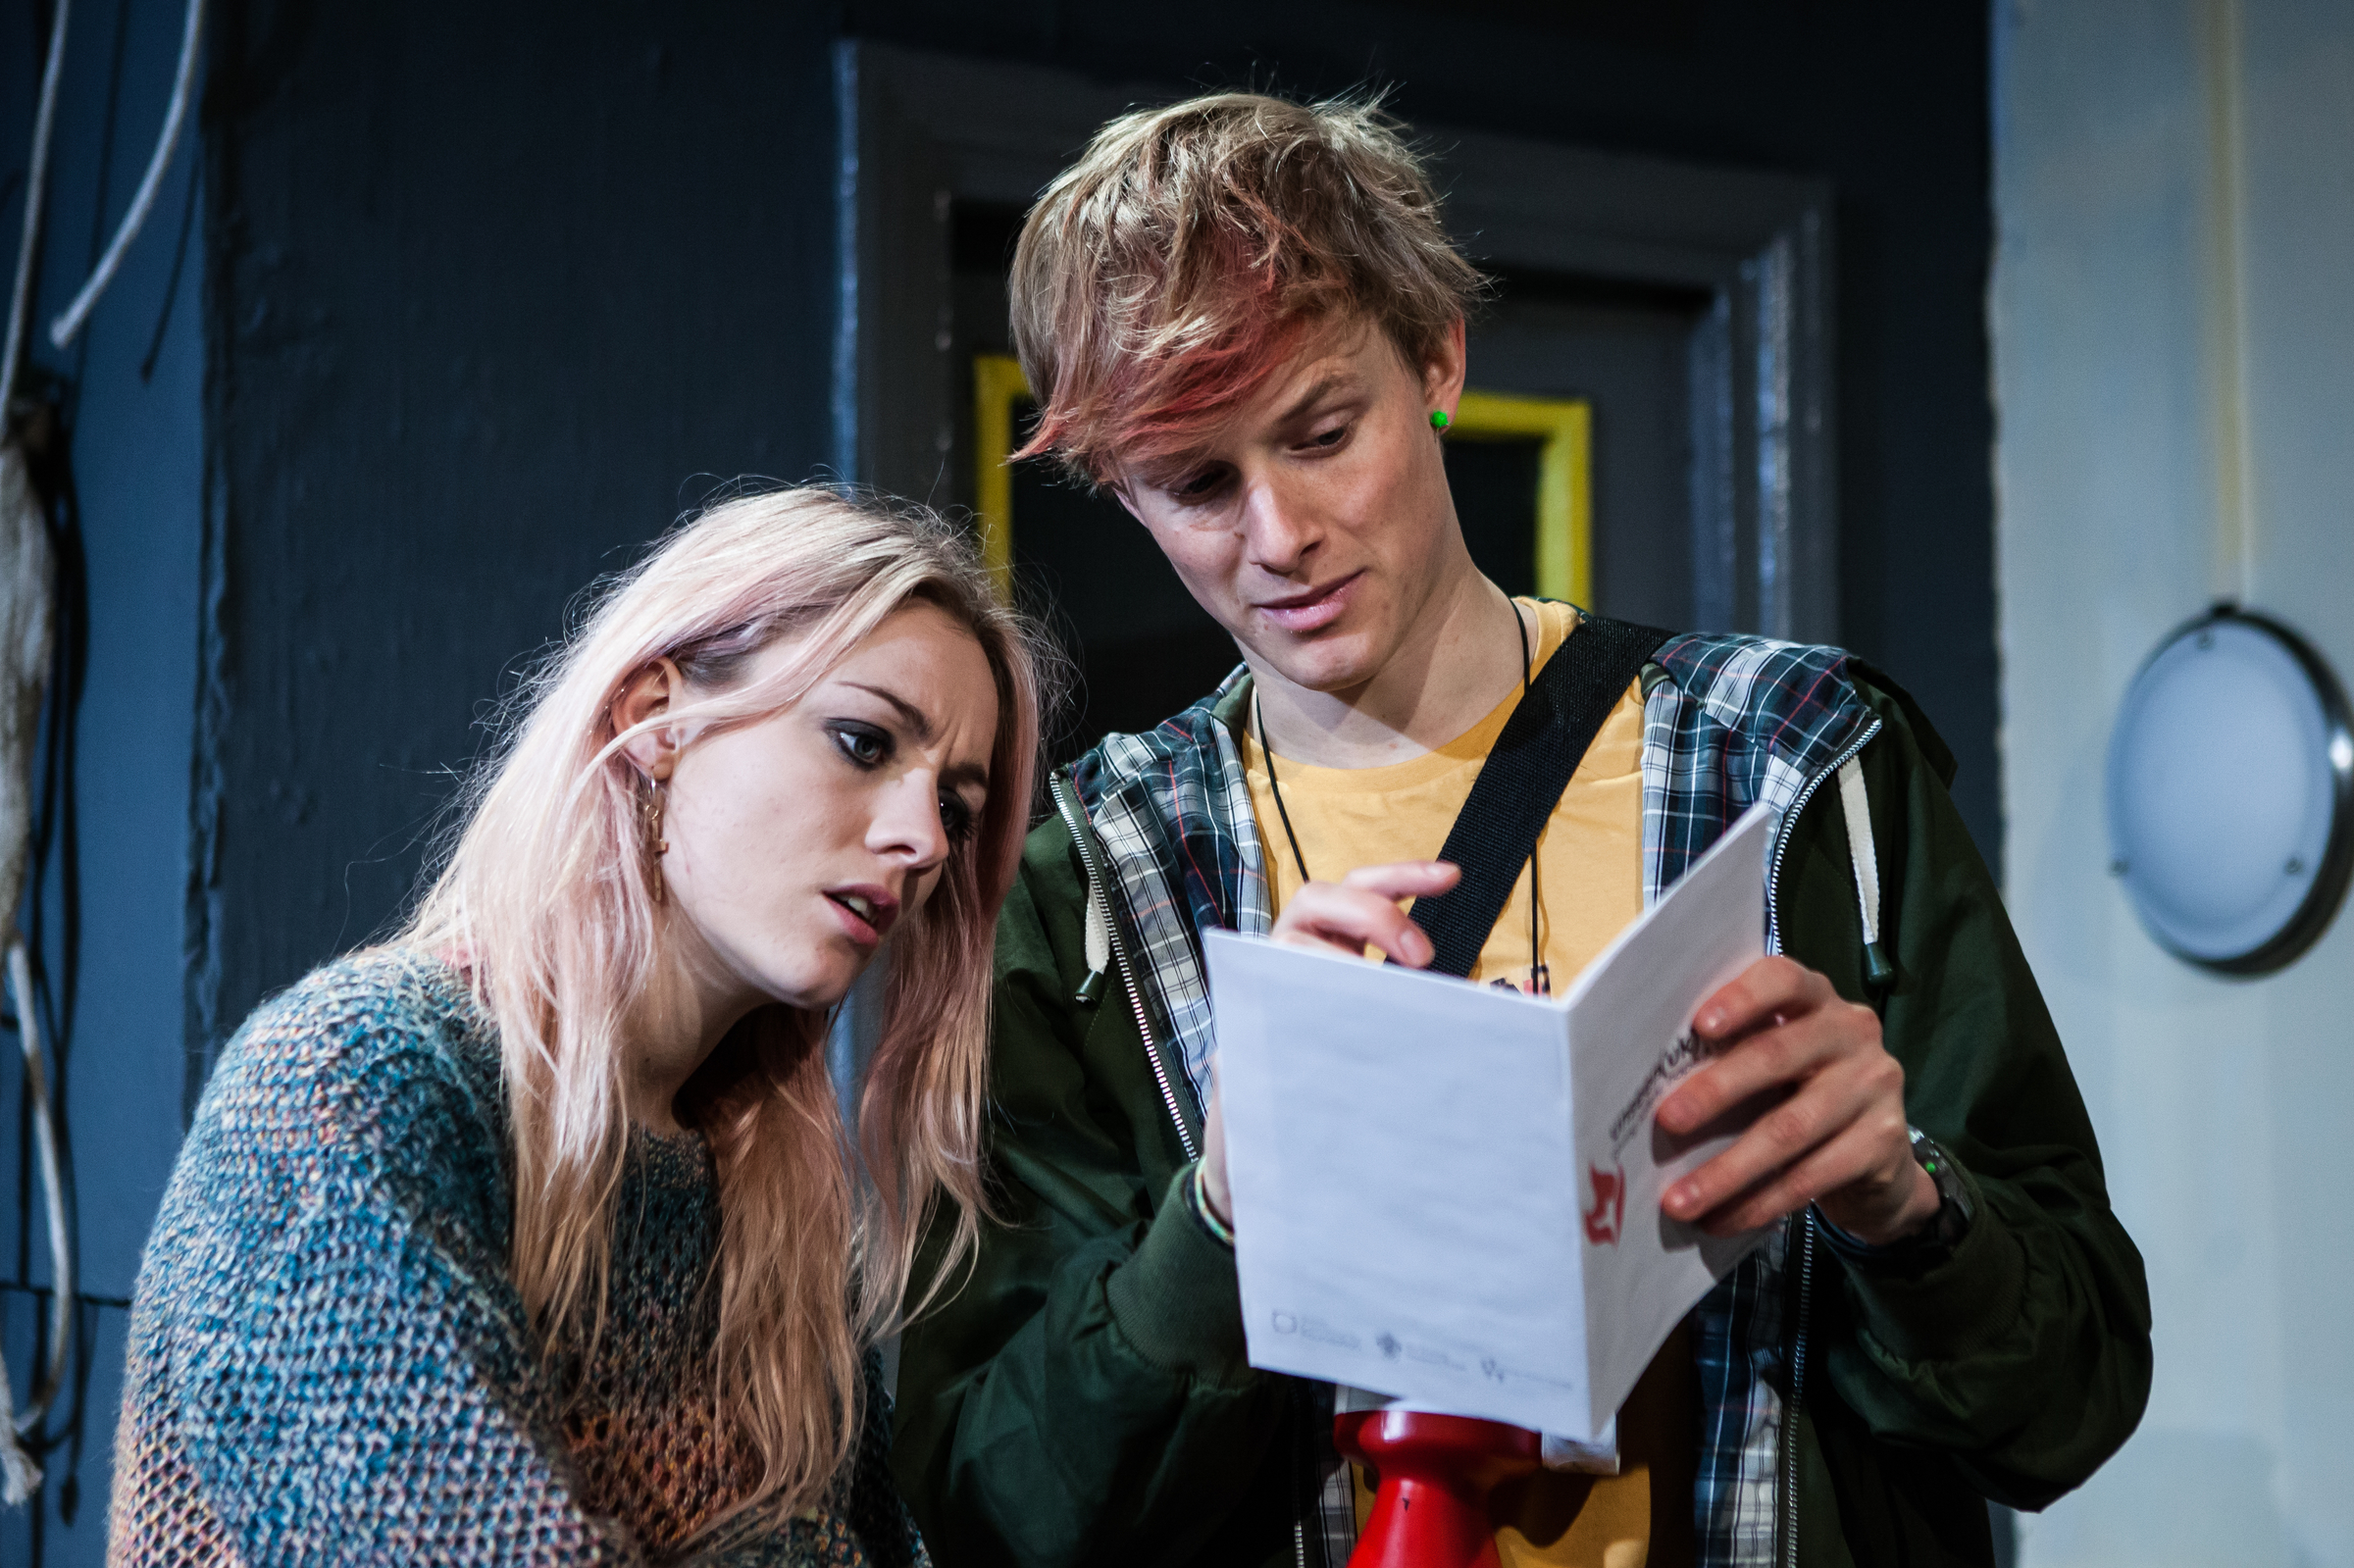 Skye Lourie as Maggie and Harry Lister Smith as Kiph in  Everyday Maps for Everyday Use.  Photo by Richard Davenport.